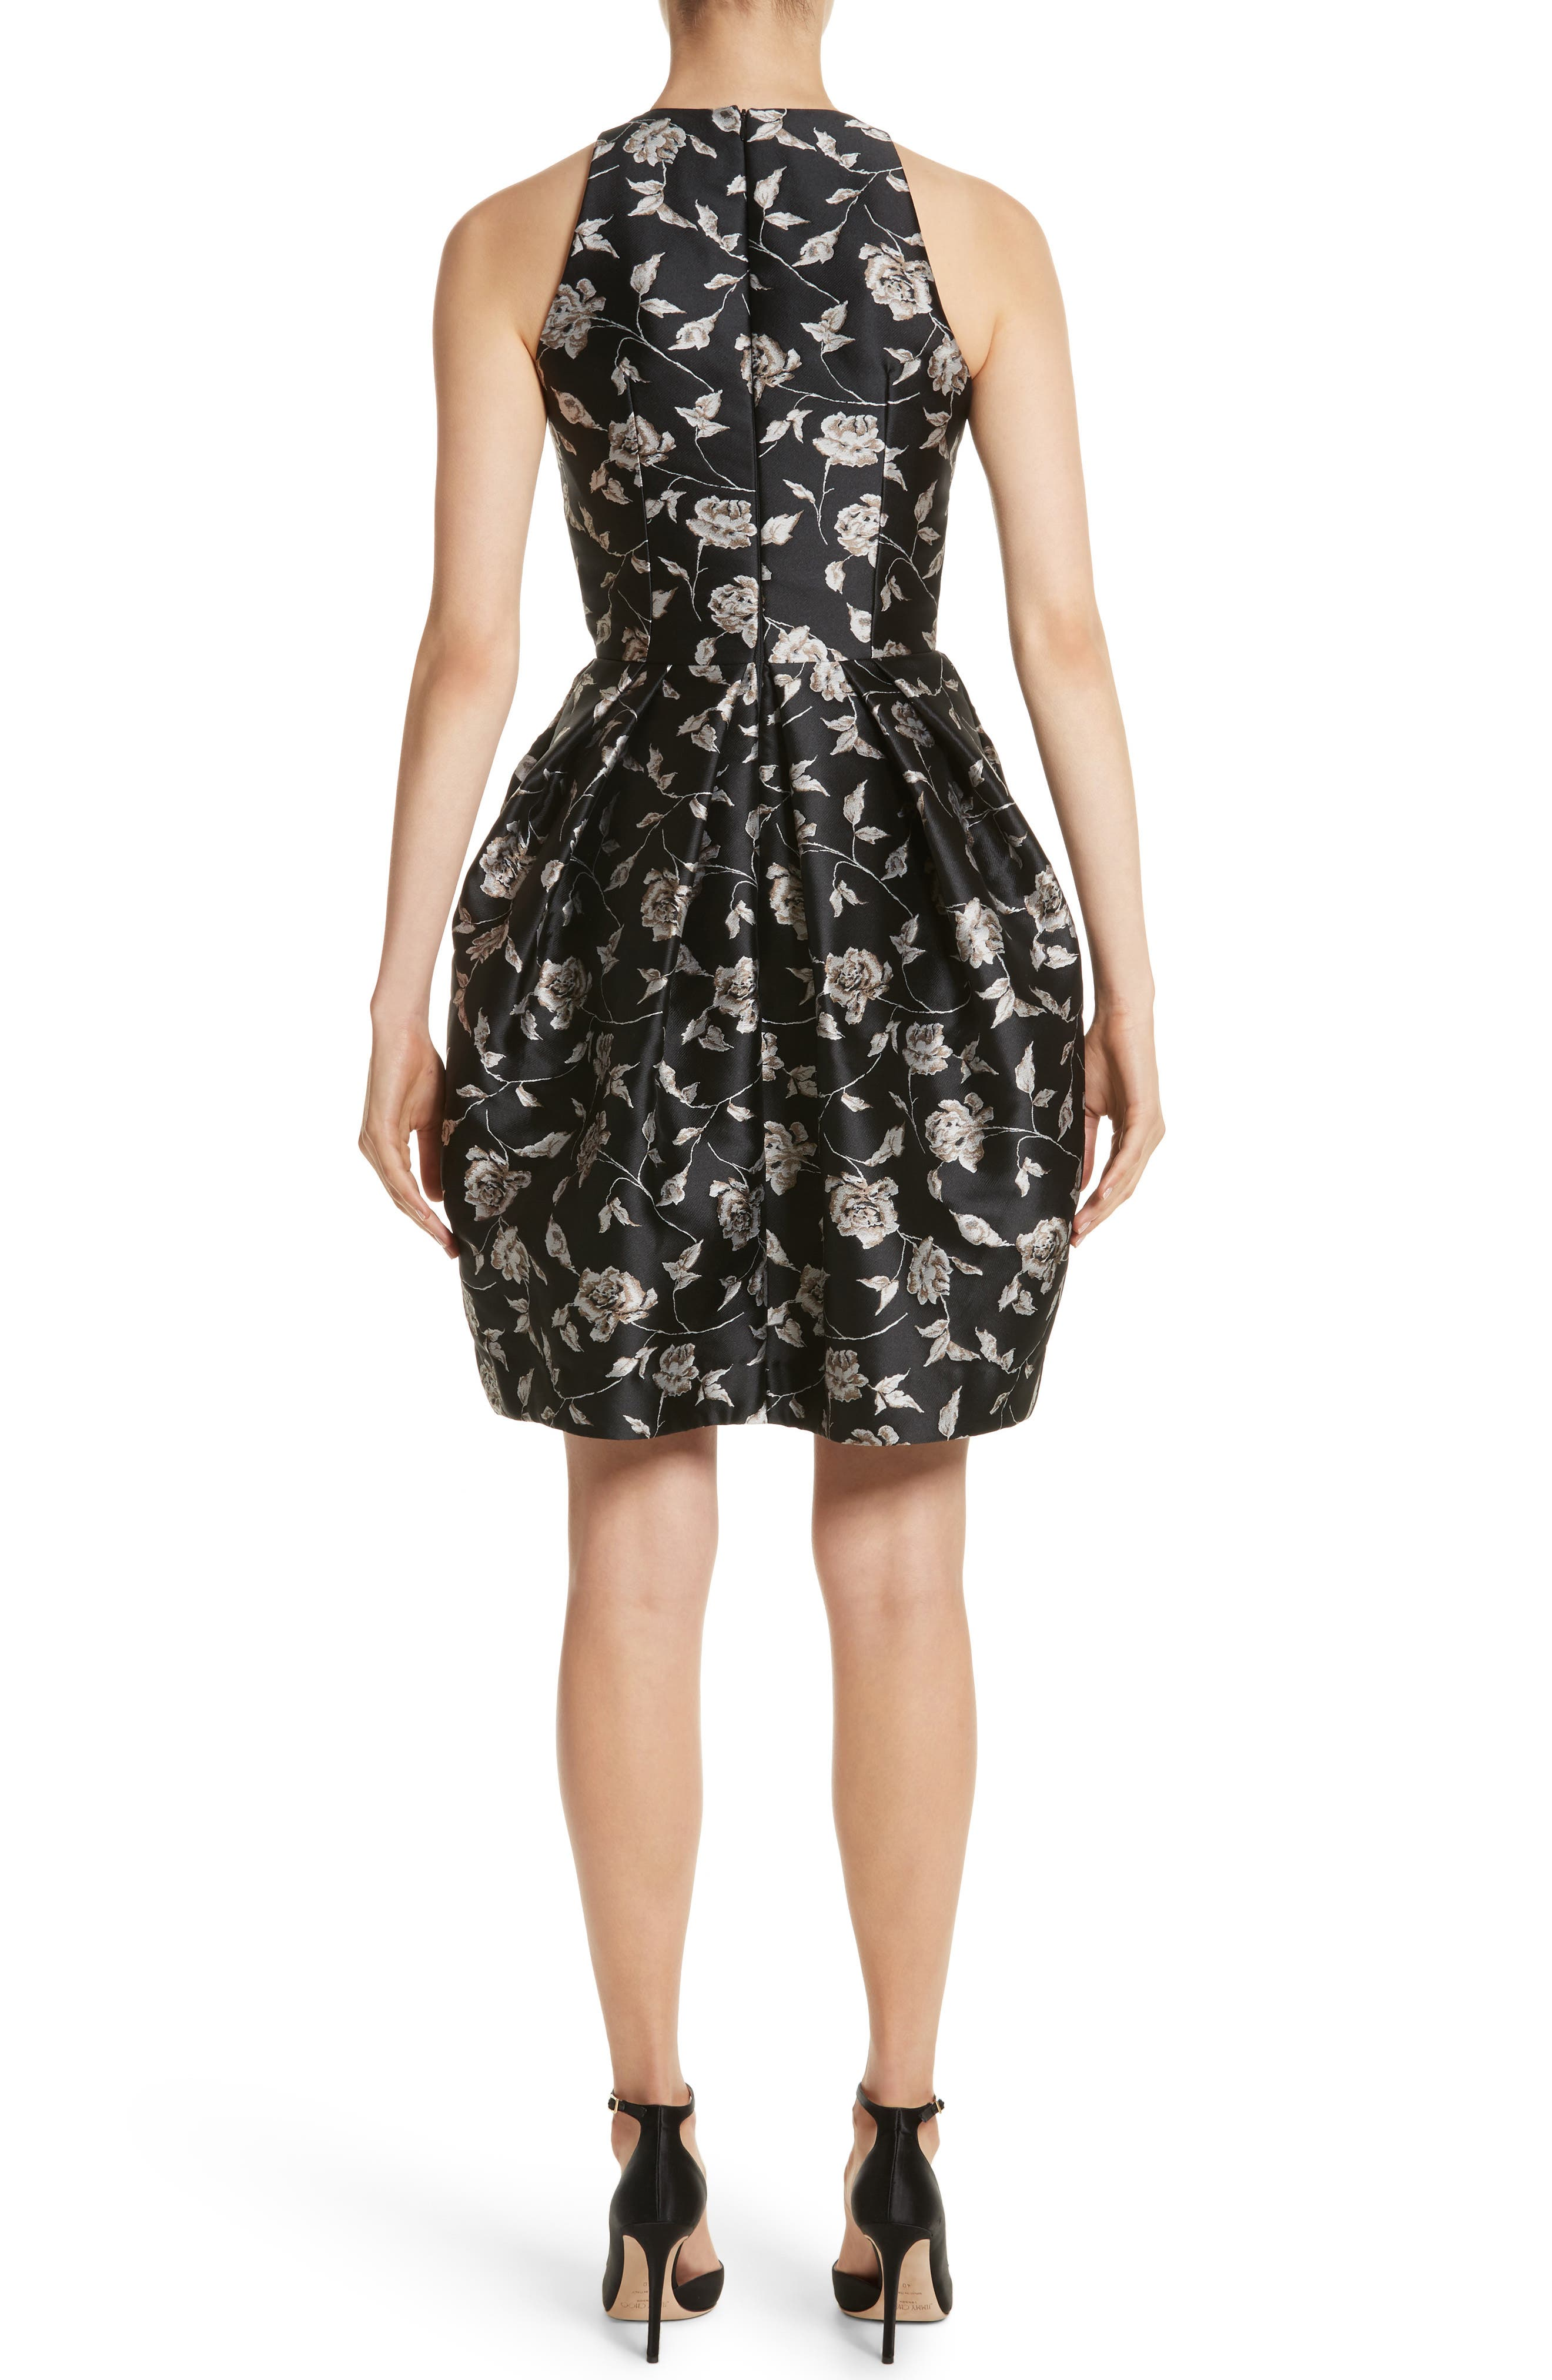 Carmen Marc Valvo Embellished Appliqué Floral Jacquard Cocktail Dress,                             Alternate thumbnail 2, color,                             Black